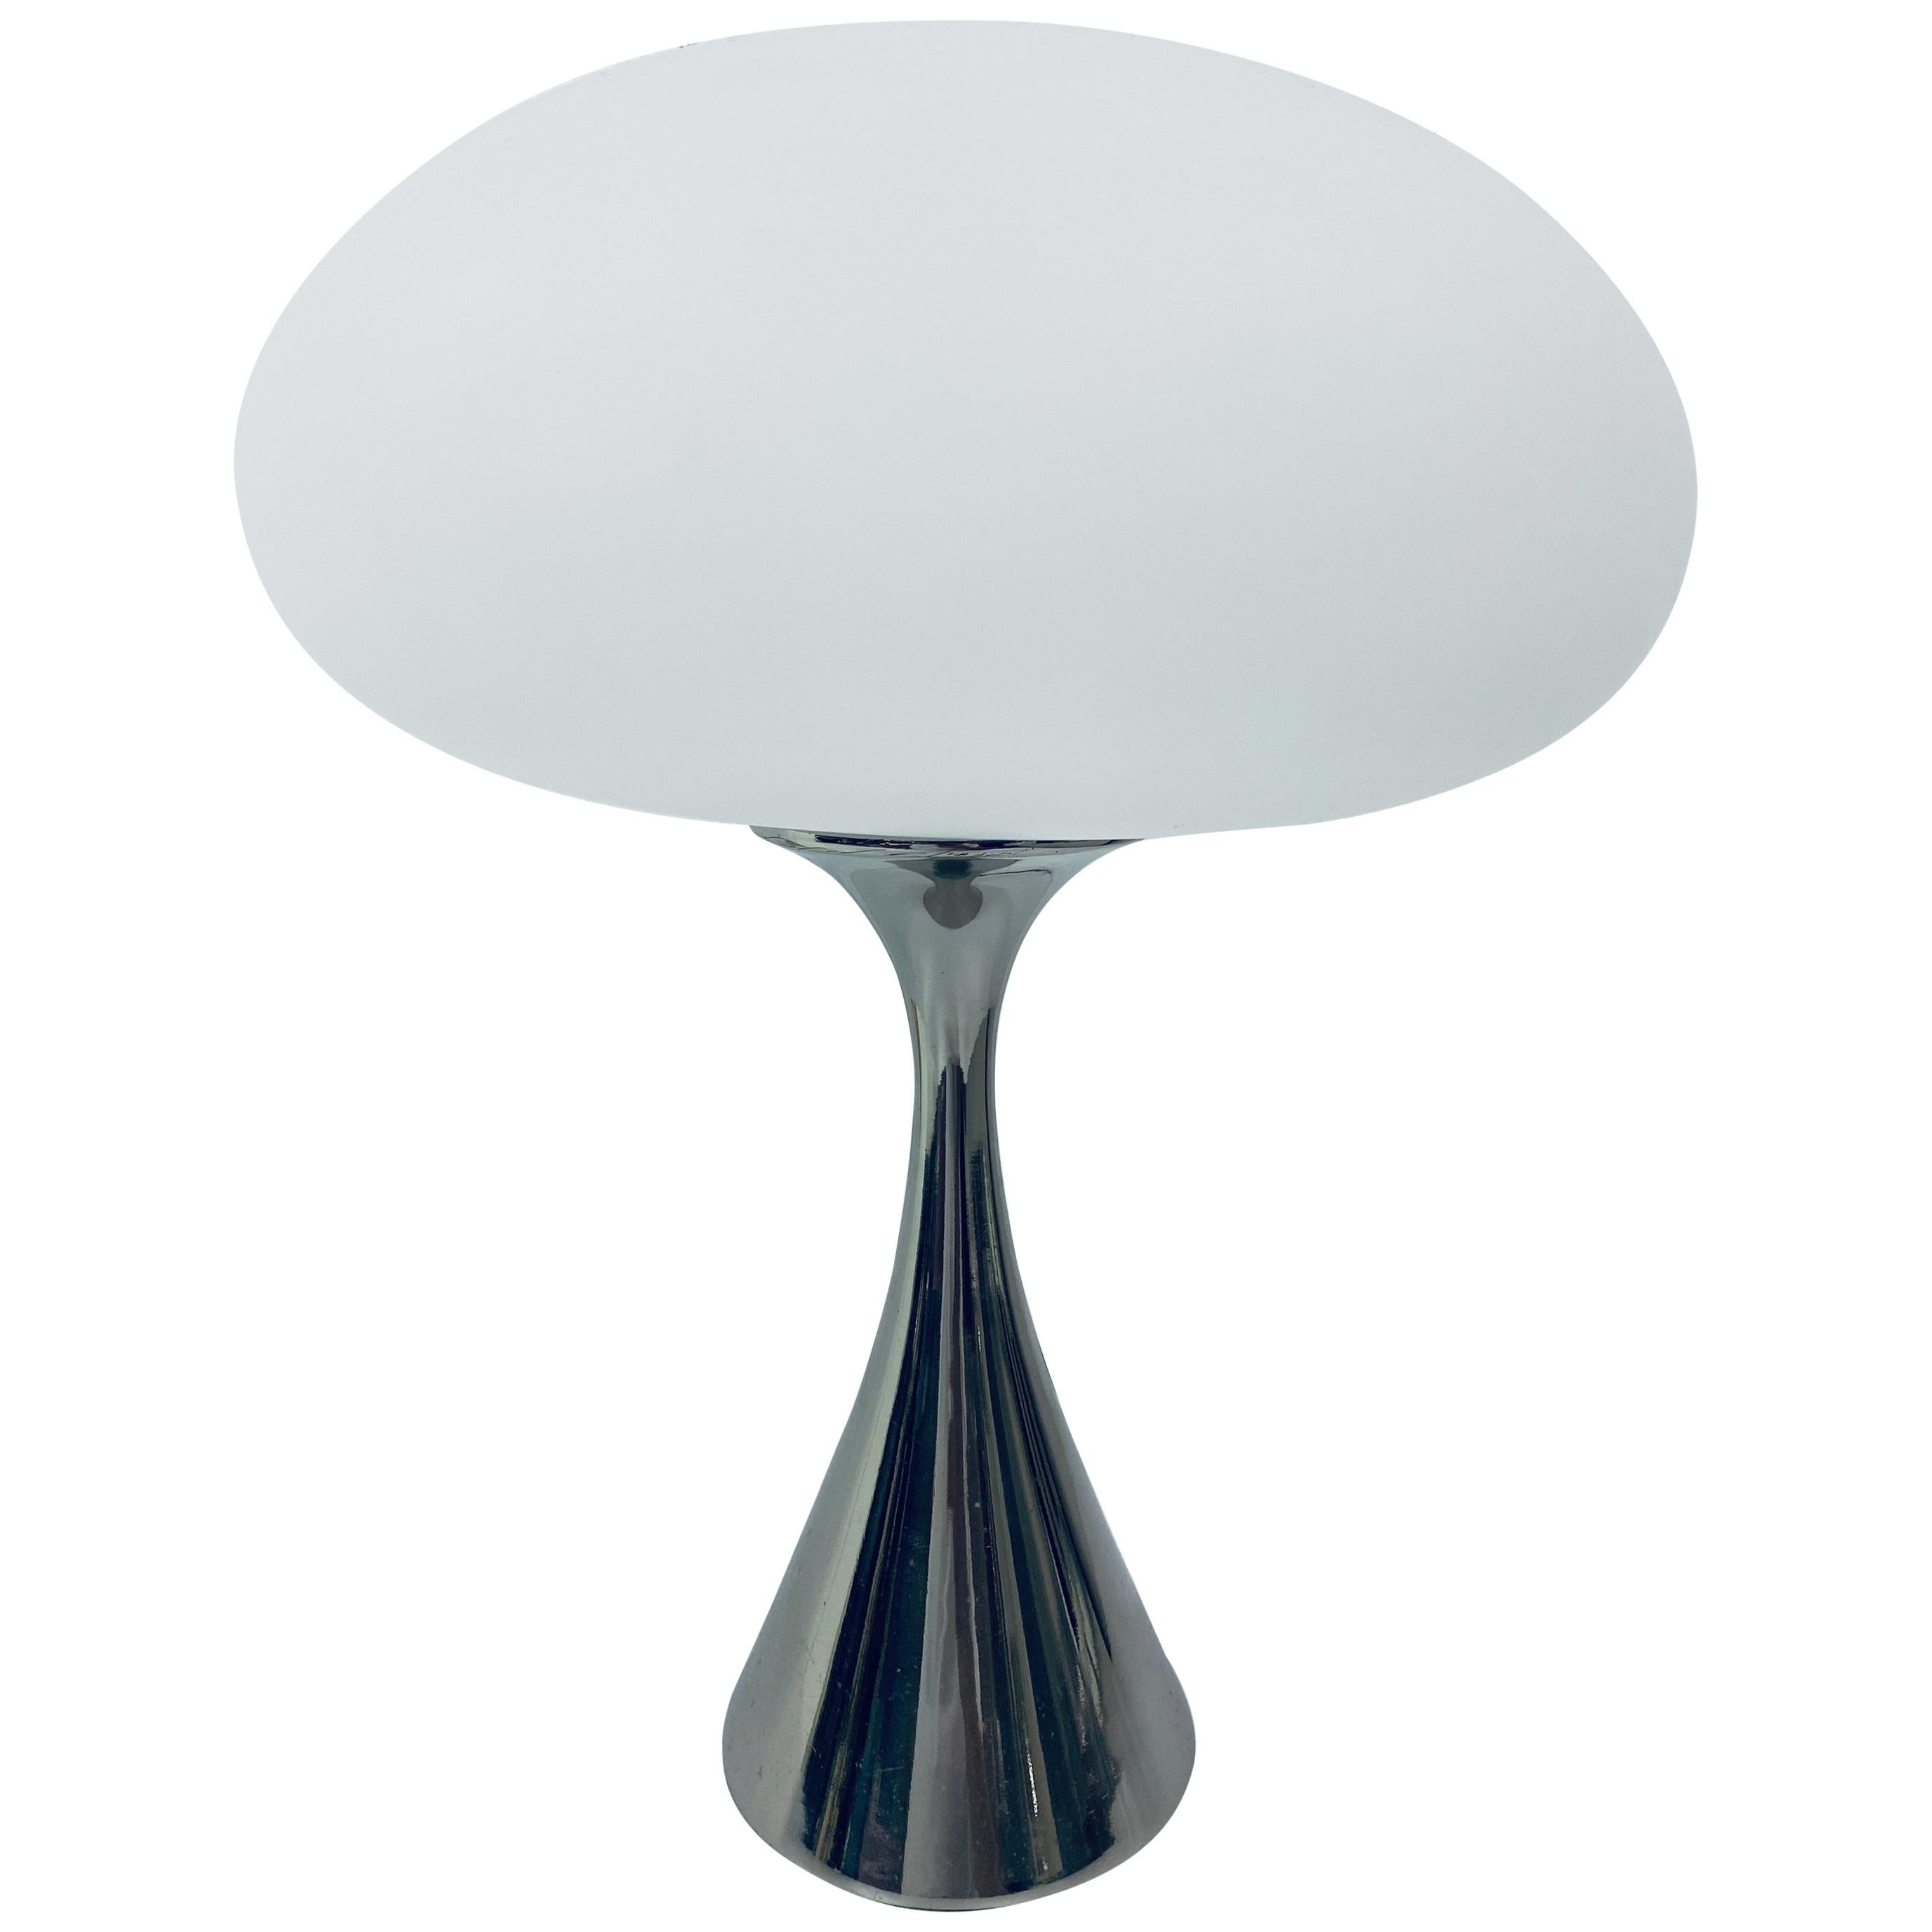 Bill Curry Polished Chrome Mushroom Table or Desk Lamp for Laurel